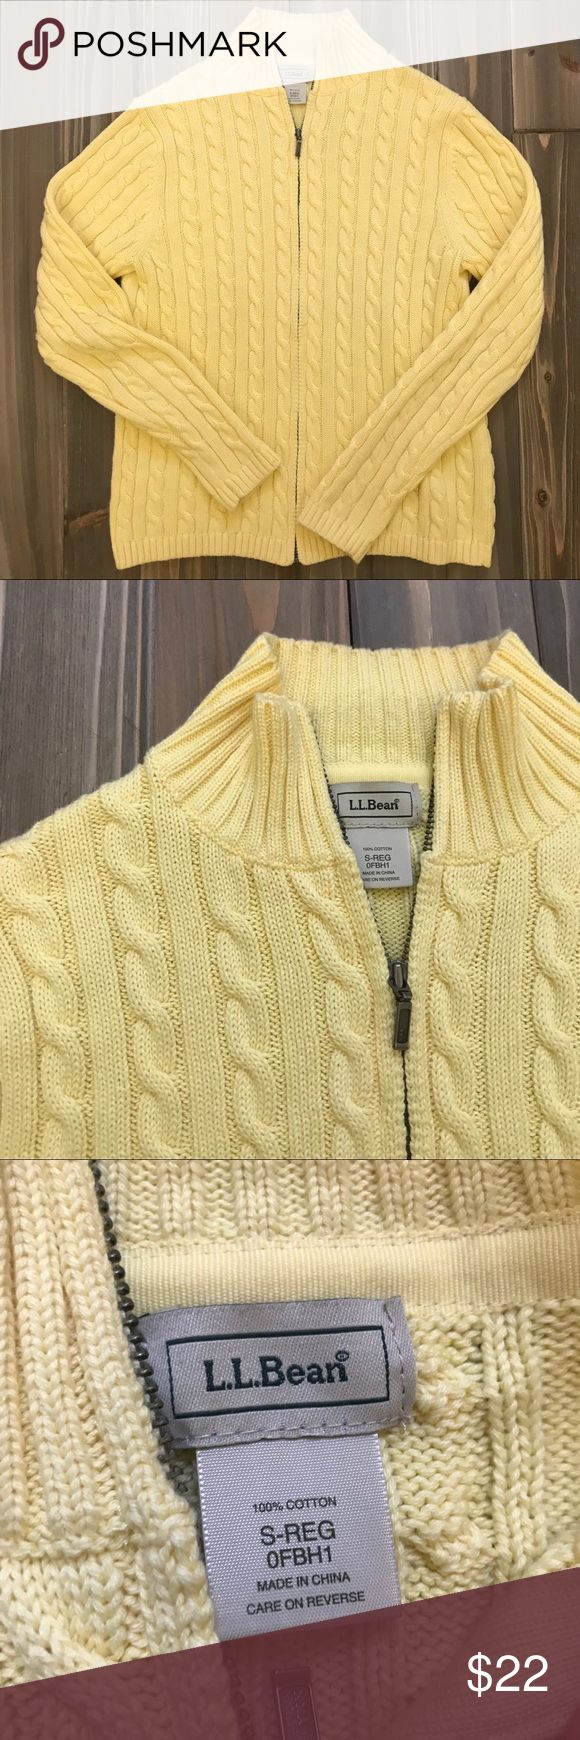 "Eddie Bauer Cotton Cardigan size S A super lemon yellow. Size S. Pre-loved and in good shape. 100% Cotton. Shoulder to hem: 21"", outer sleeve: 23"", pit to pit: 18"".   Note the 2nd pic is the best indicator of its color.   Shop smart by maximizing your shipping $. Use the filter function and peruse my closet of over 1,000 items! Bundle and save!!    SW3 Eddie Bauer Sweaters Cardigans"